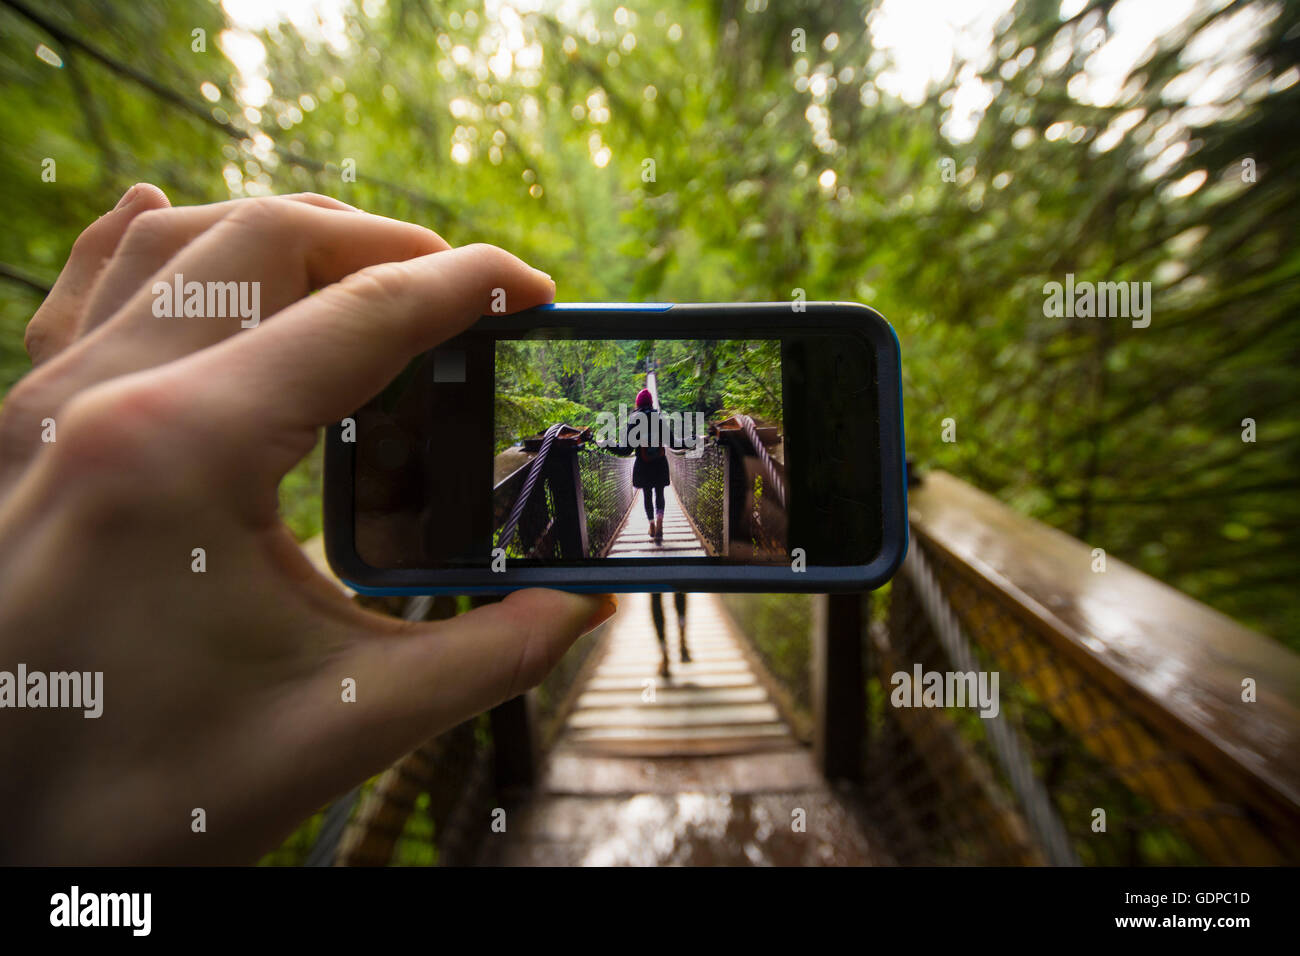 Man hand holding smartphone with image of woman on Lynn canyon suspension bridge, North Vancouver, British Columbia, - Stock Image